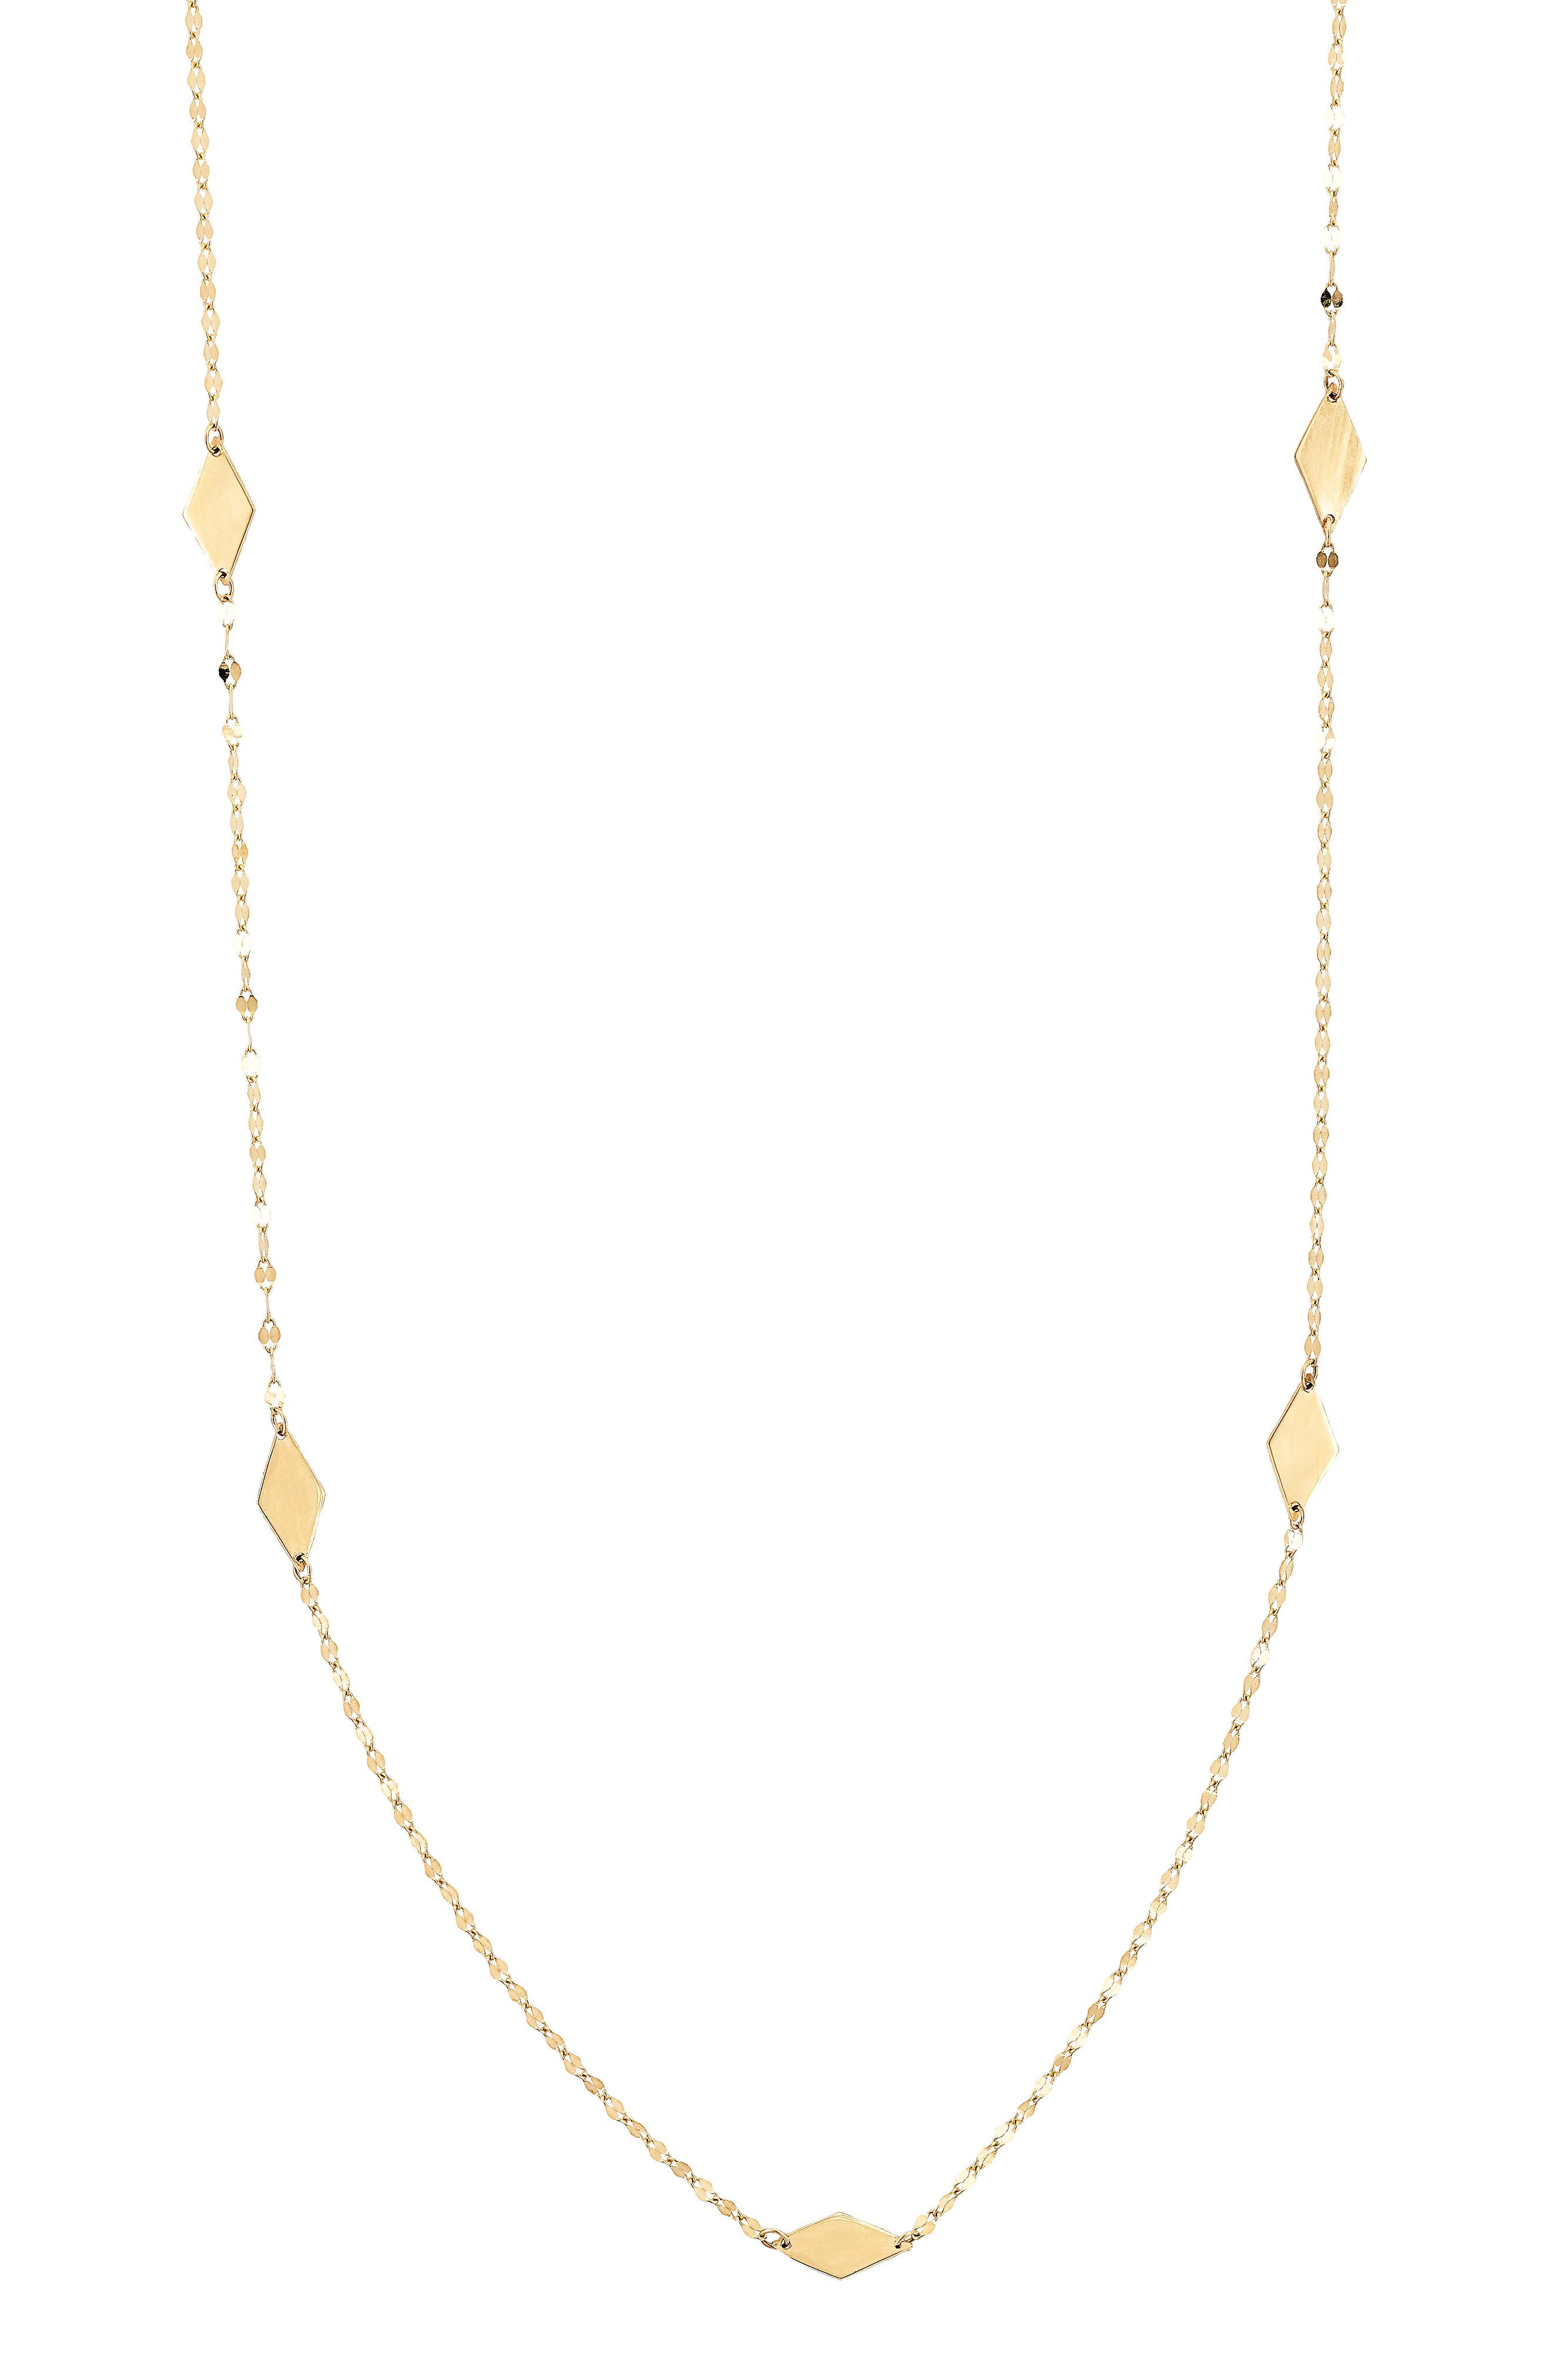 Kite Station Necklace,                         Main,                         color,